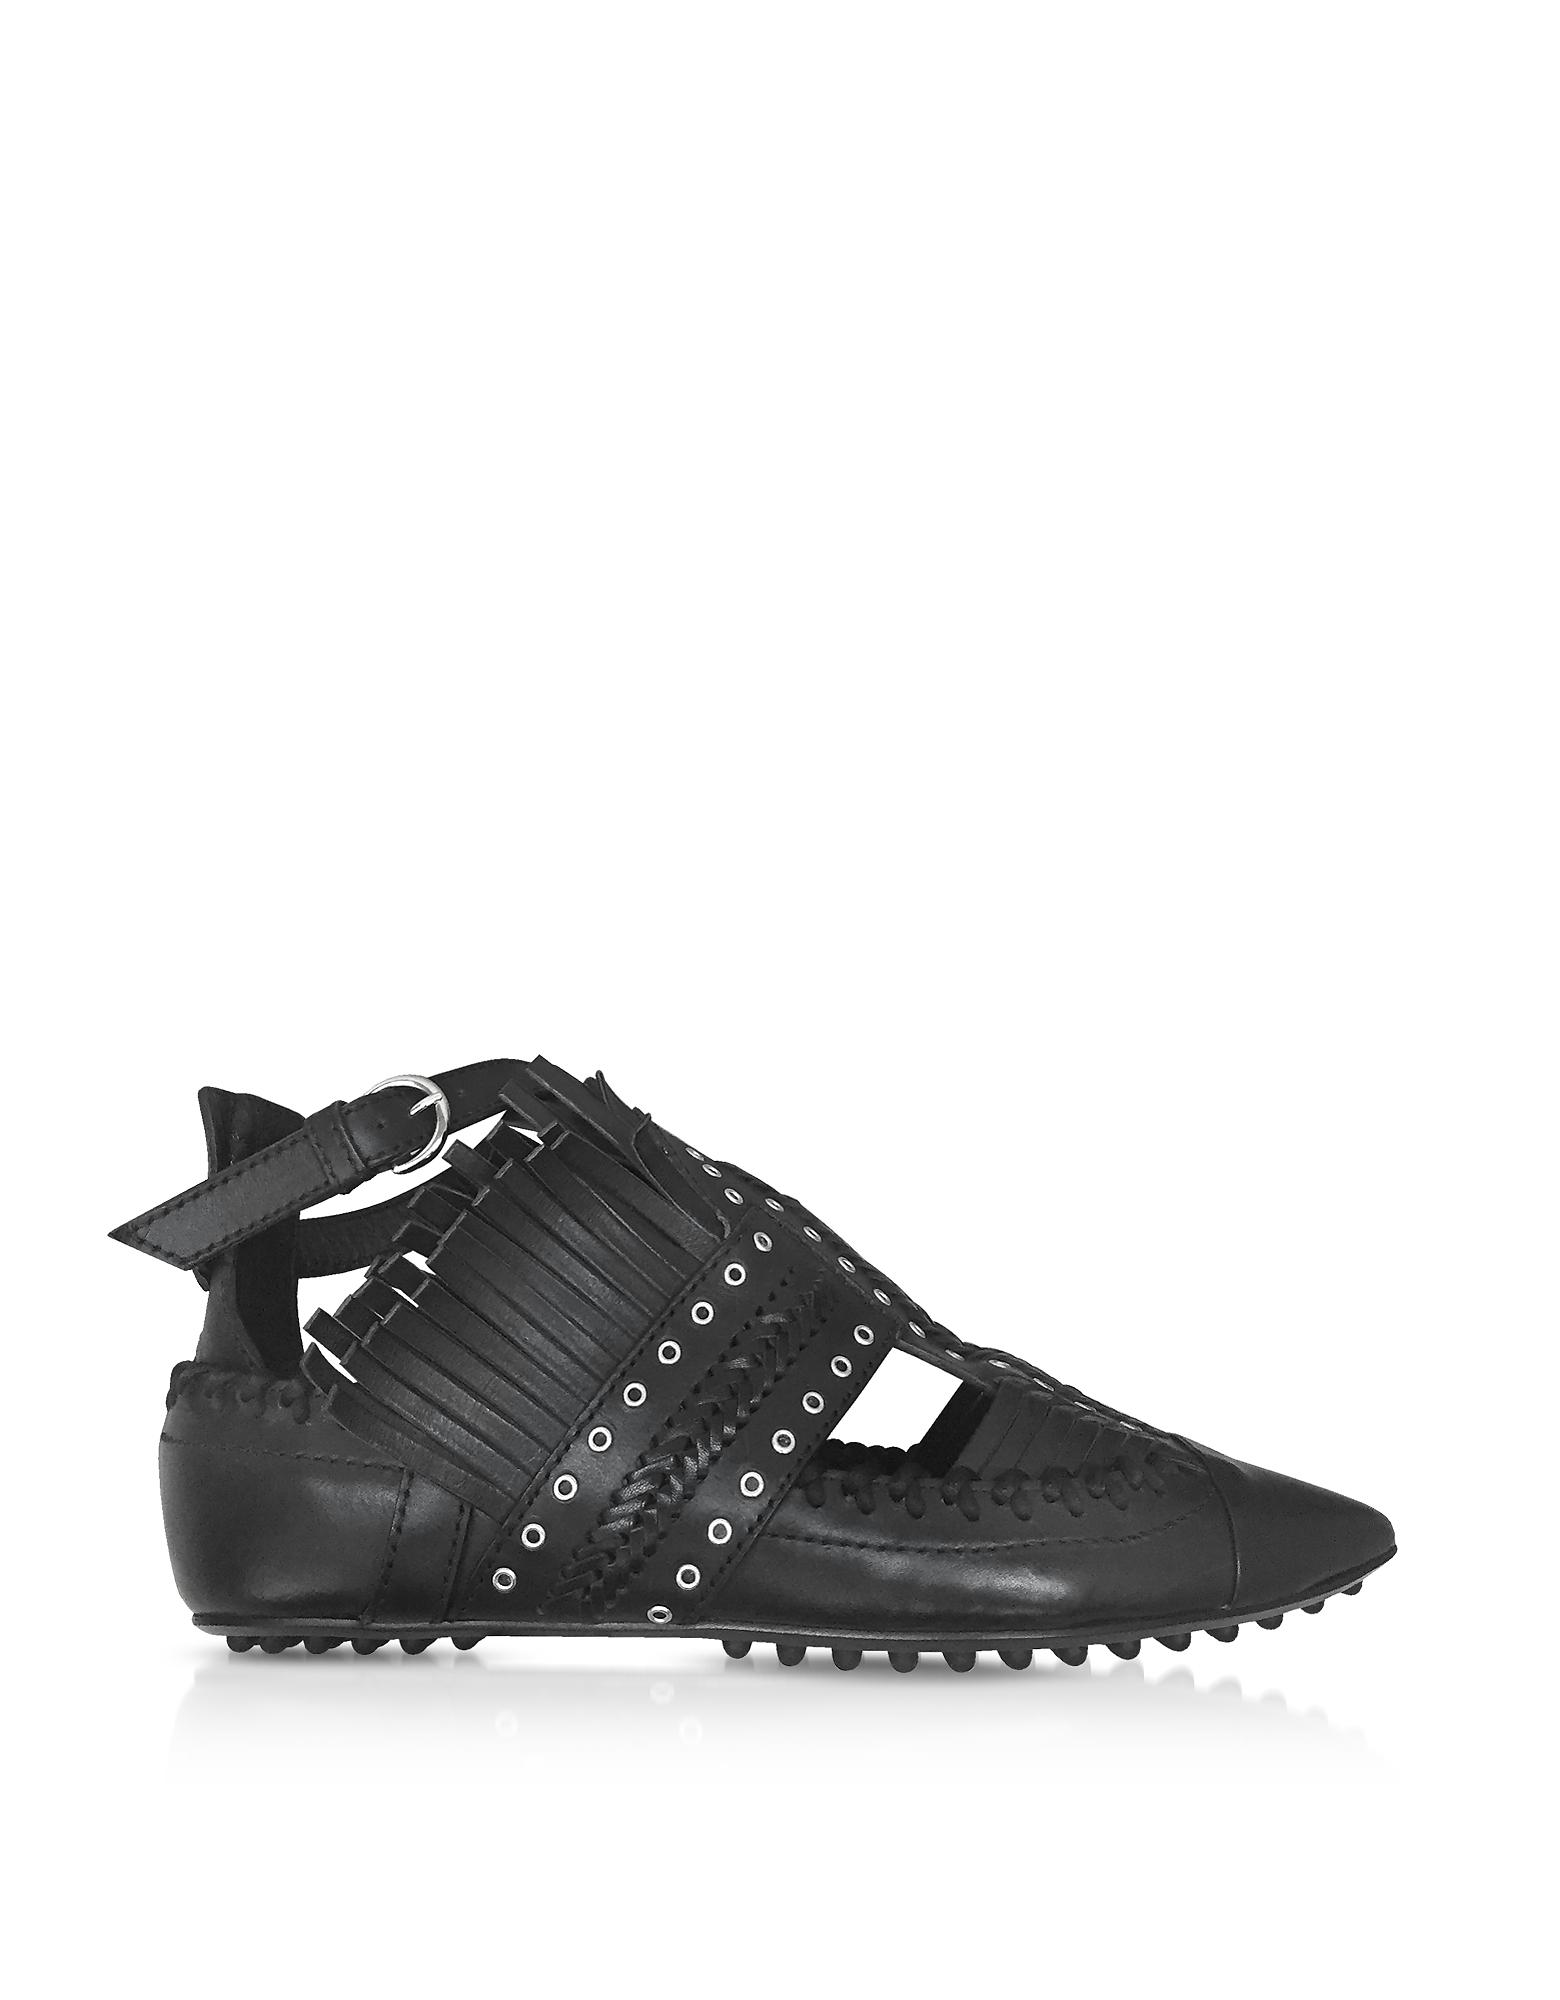 Carven Black Fringed Leather Flat Ballerinas